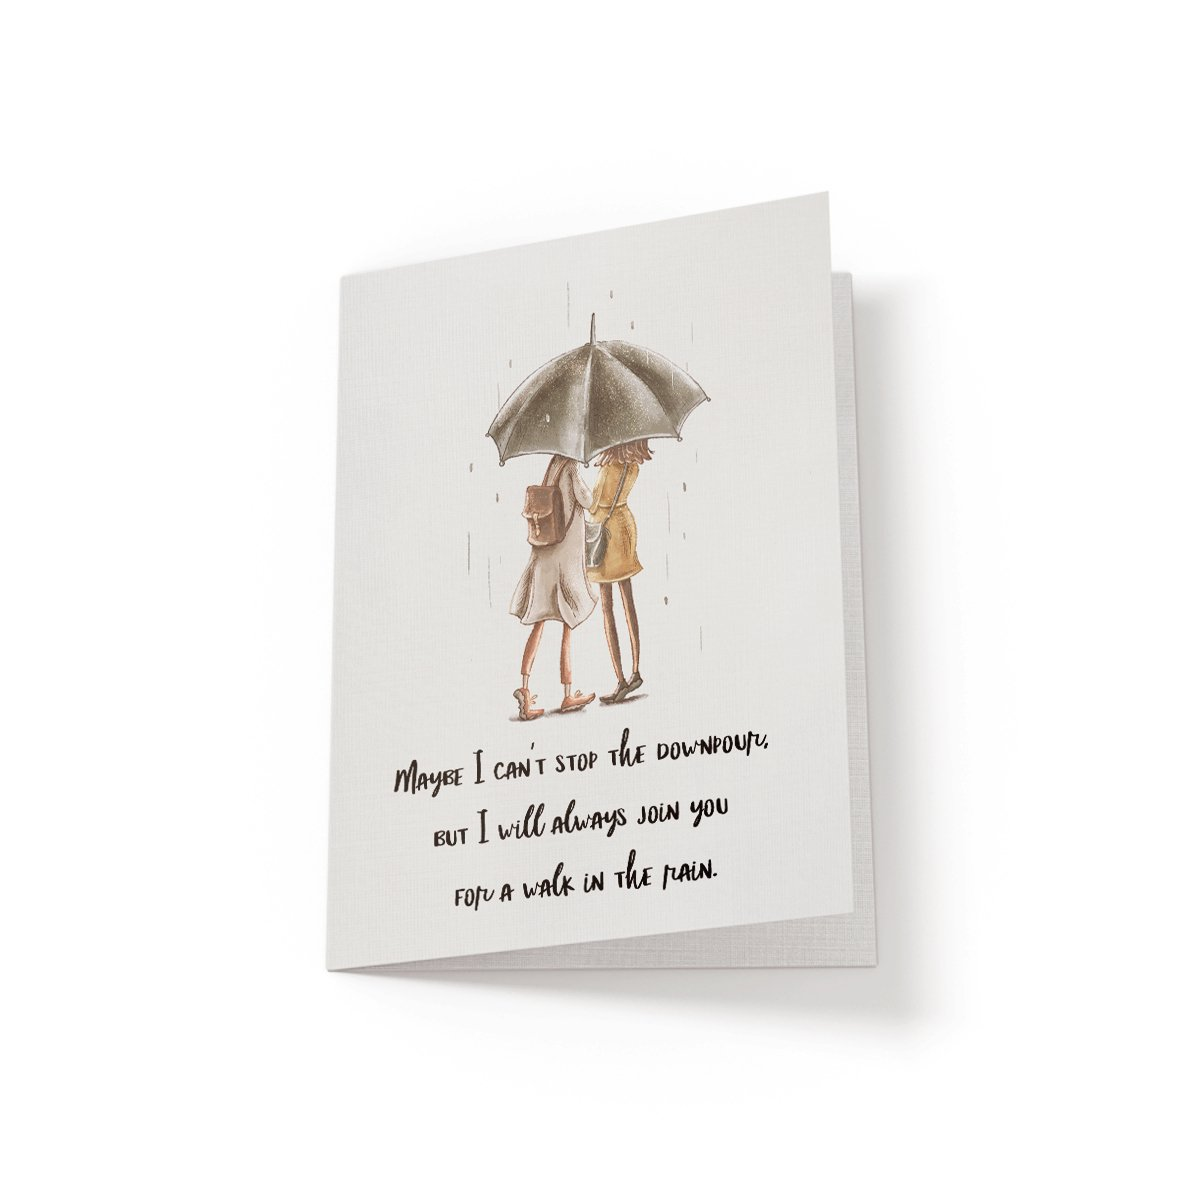 Maybe I can't stop the downpour - Greeting Card - Netties Expressions